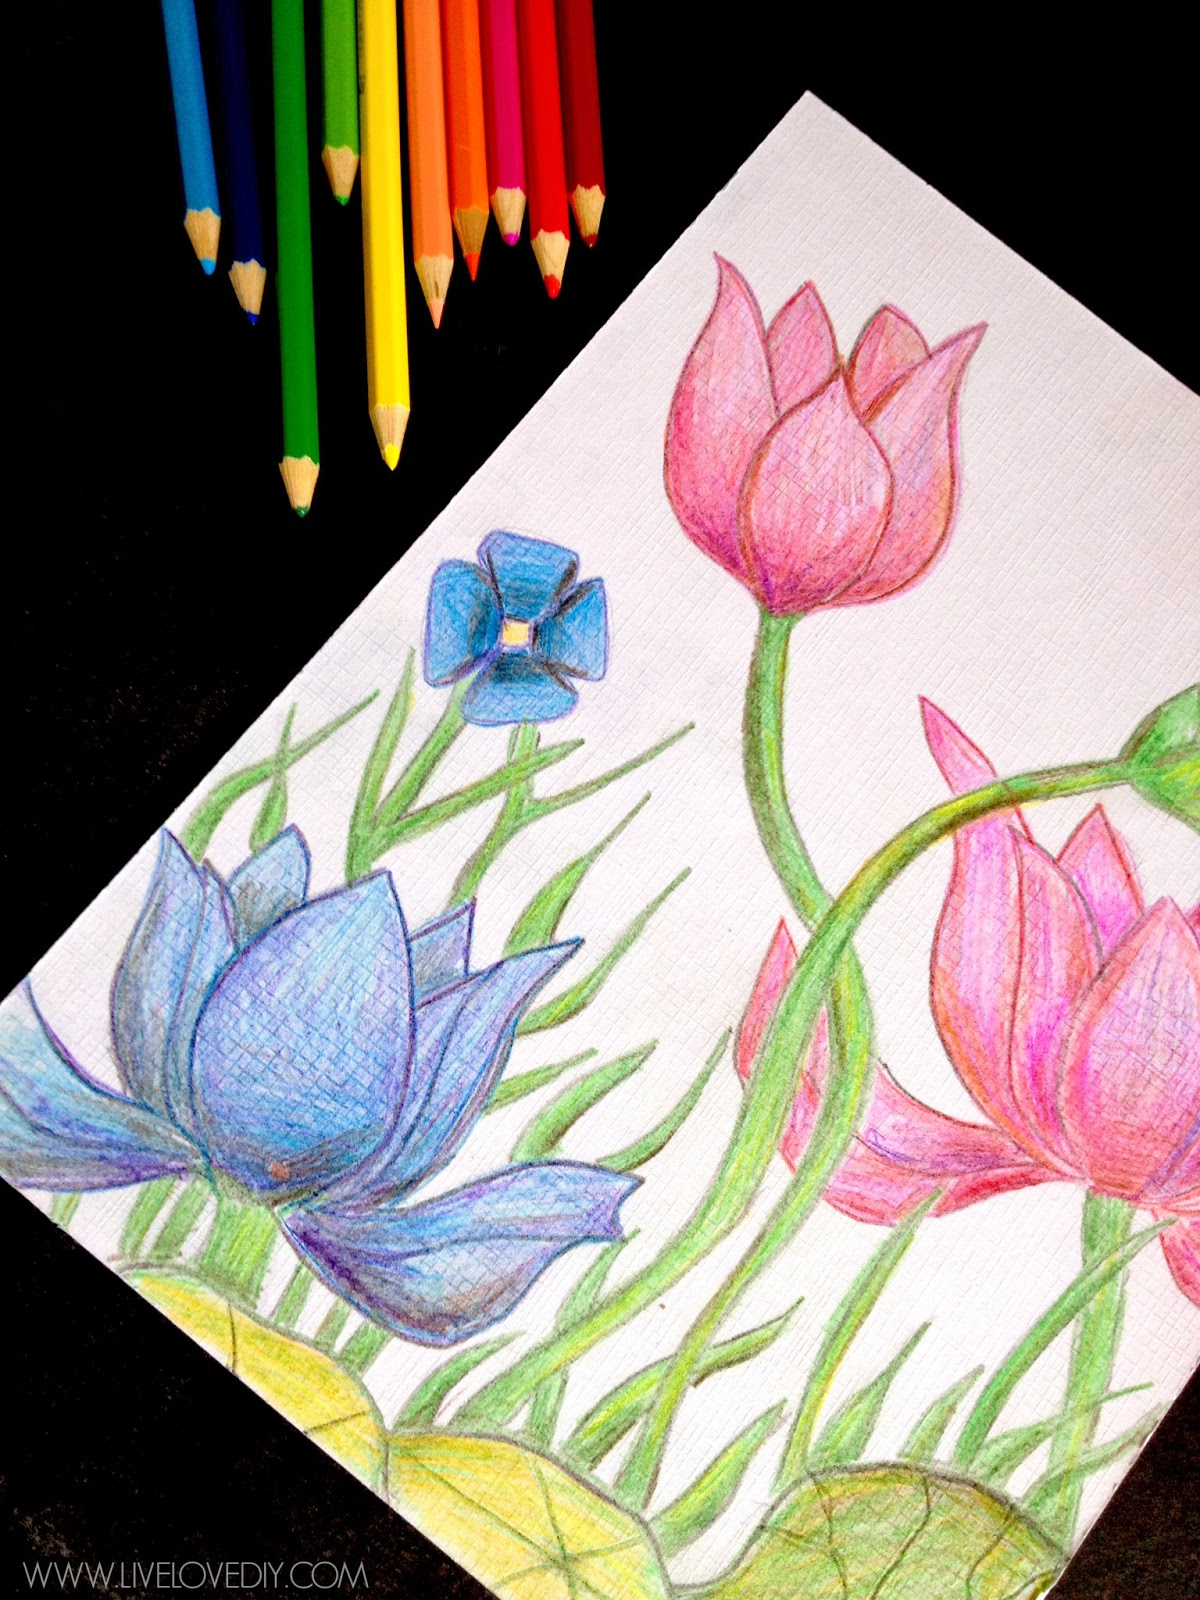 Livelovediy how to use watercolor pencils aka my for Watercolor drawing ideas